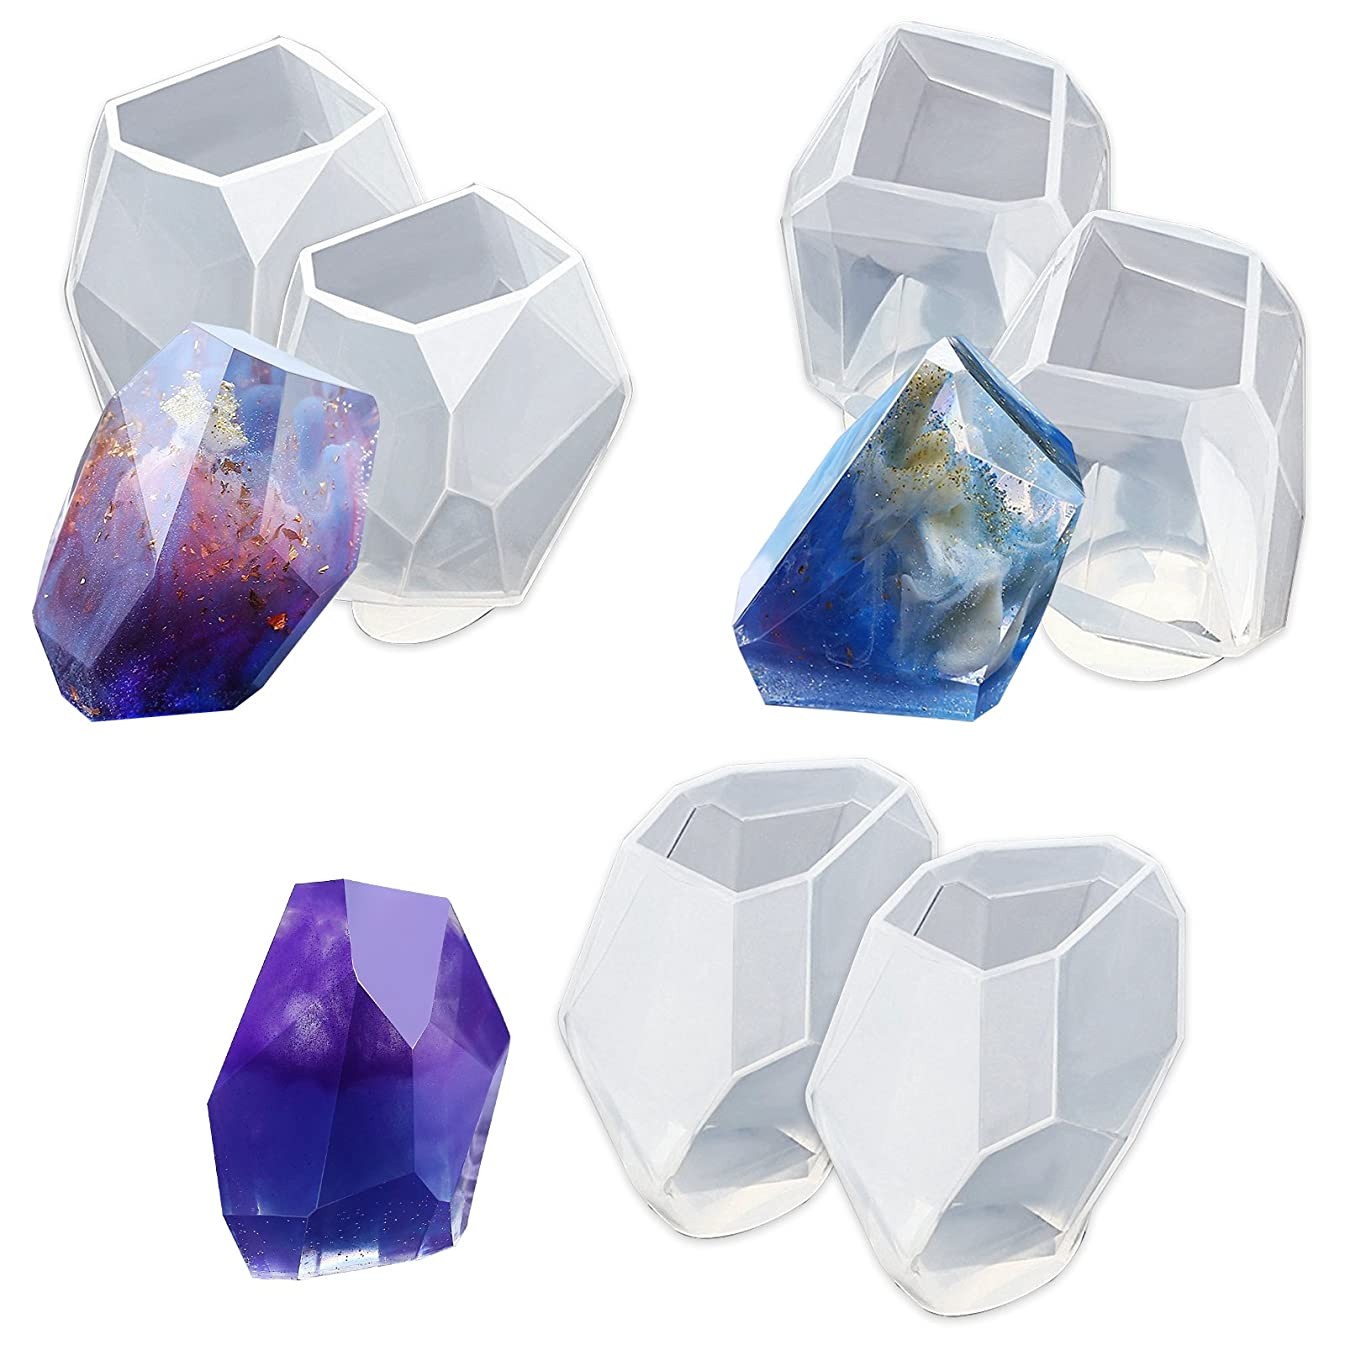 Funshowcase Large Multi-faceted Gem Stone Resin Epoxy Mold for Jewelry, Soap Making, Cabochon Gemstone Crafting Projects 6-pack